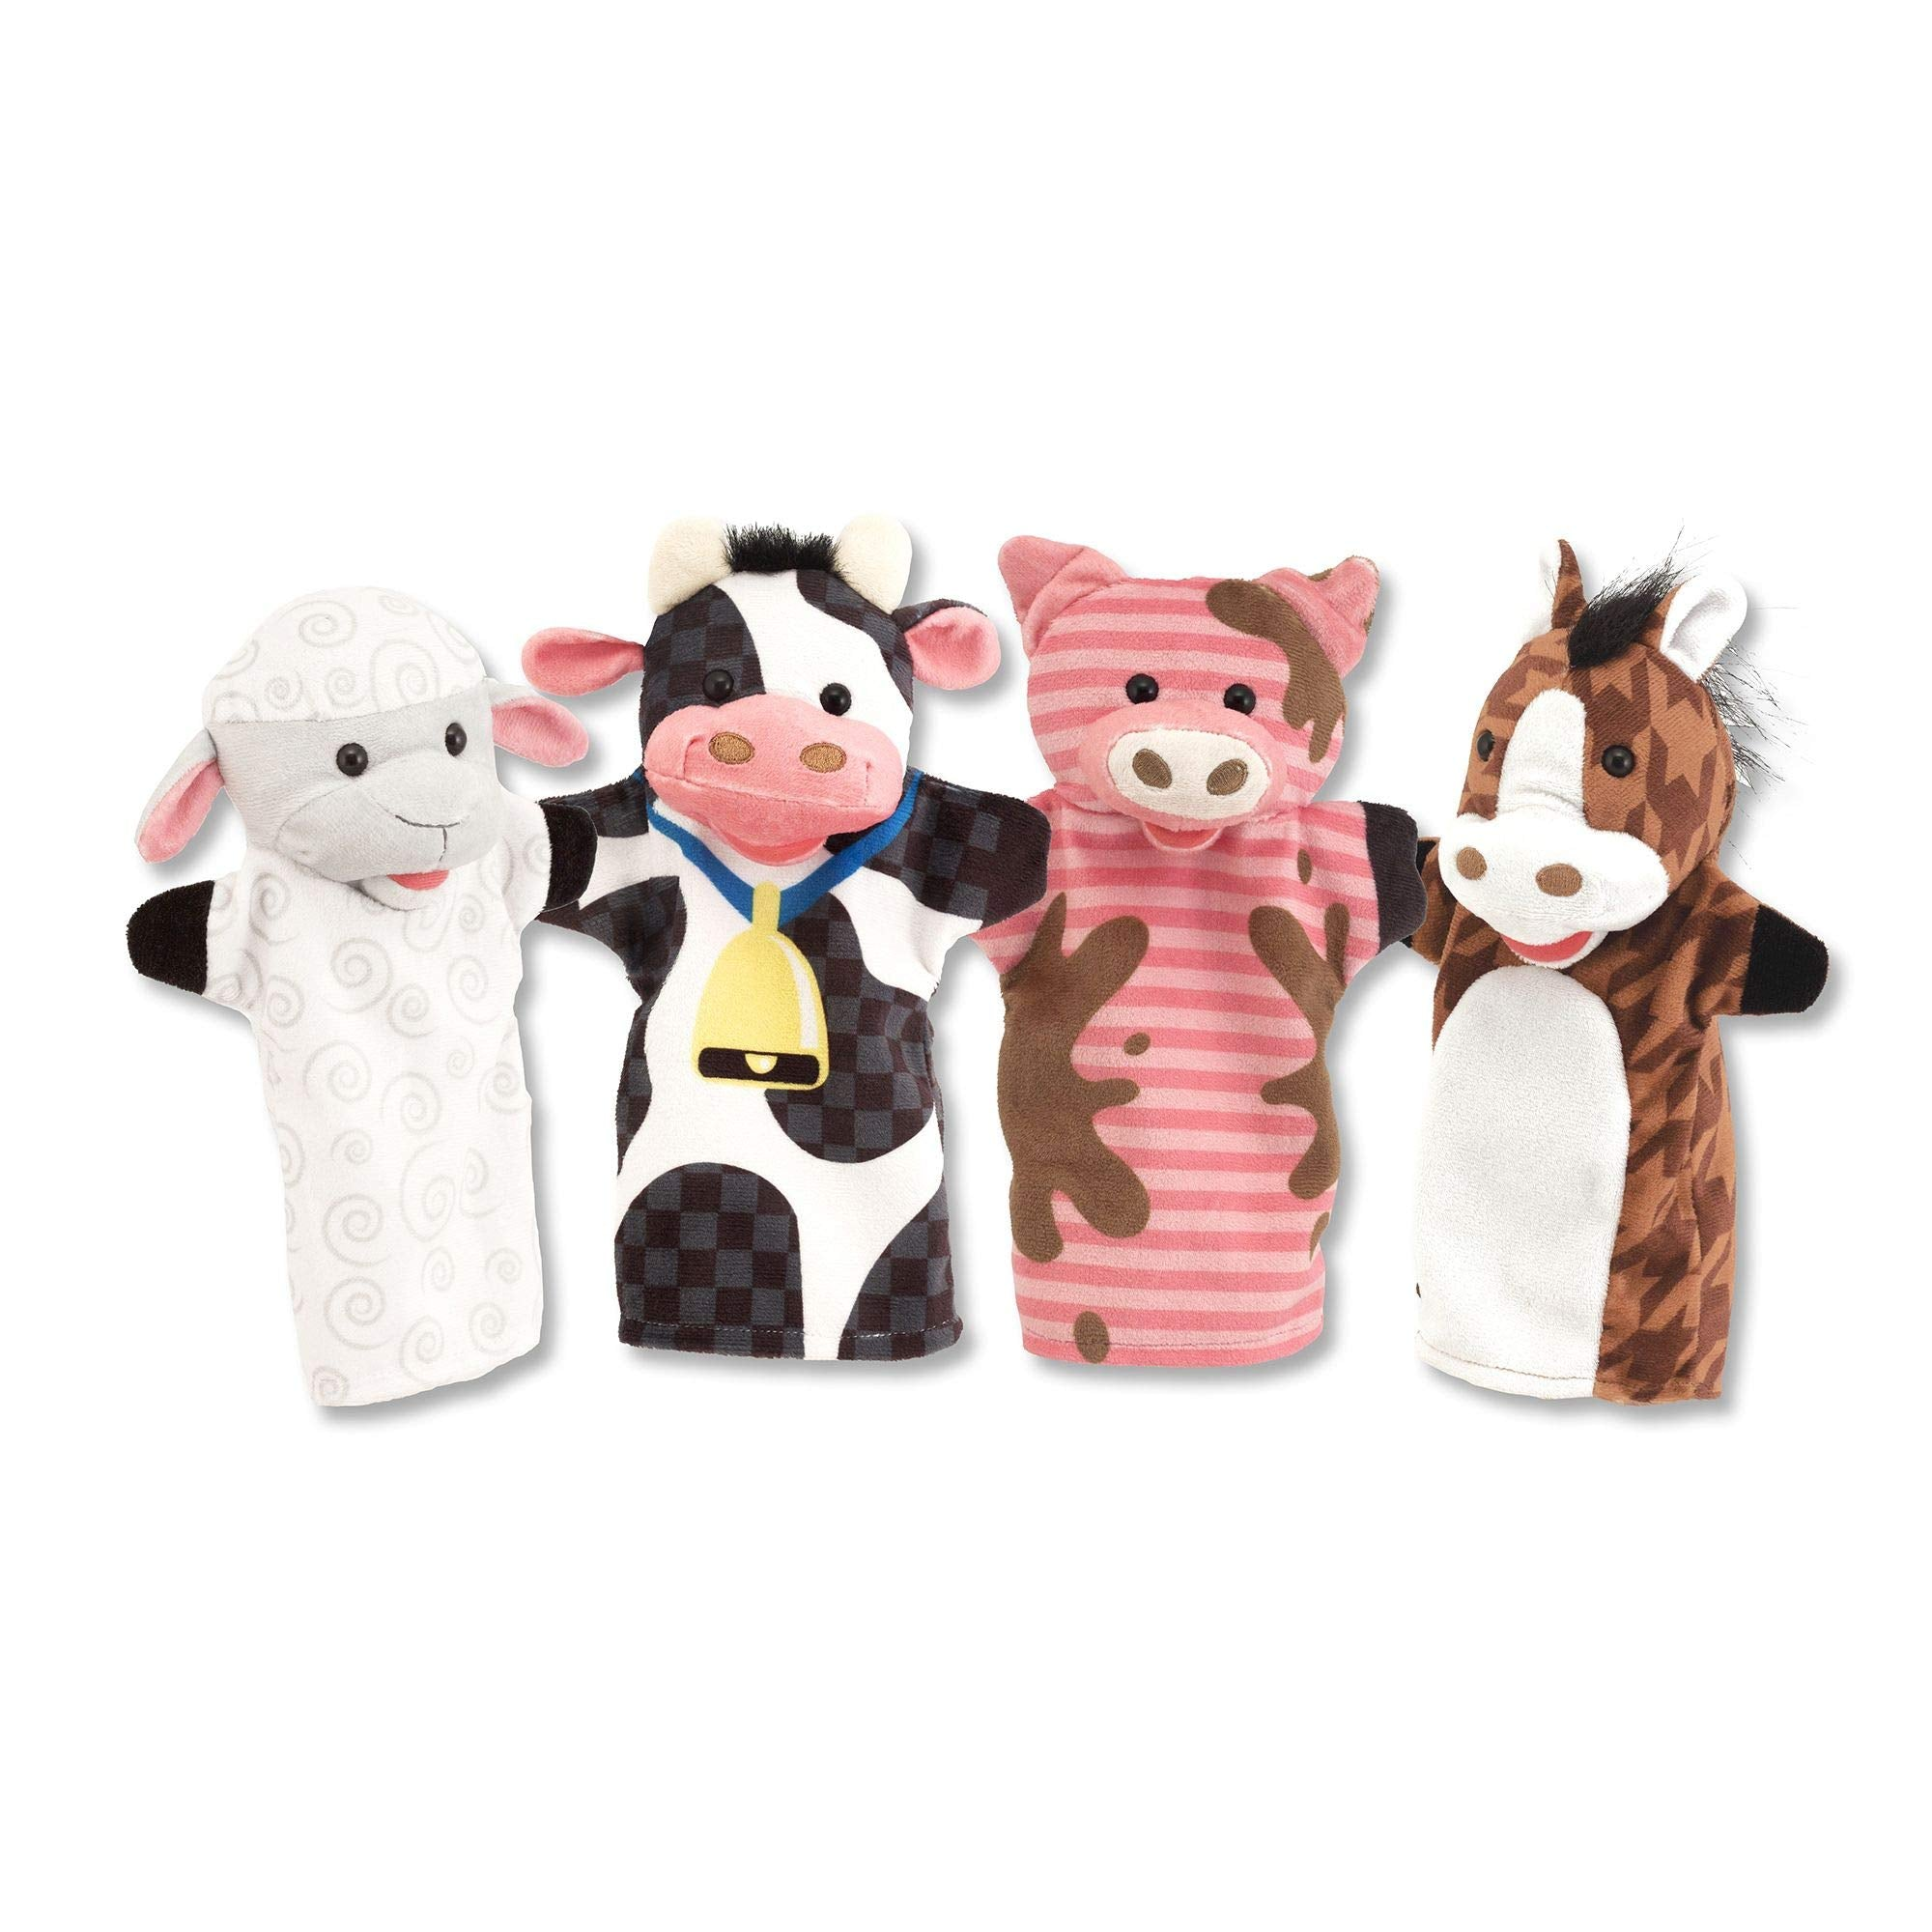 Melissa & Doug Farm Friends Hand Puppets - The Original (Set of 4 - Cow, Horse, Sheep, and Pig - Soft Plush Material, Great Gift for Girls and Boys - Kids Toy Best for 2, 3, 4, 5 and 6 Year Olds)